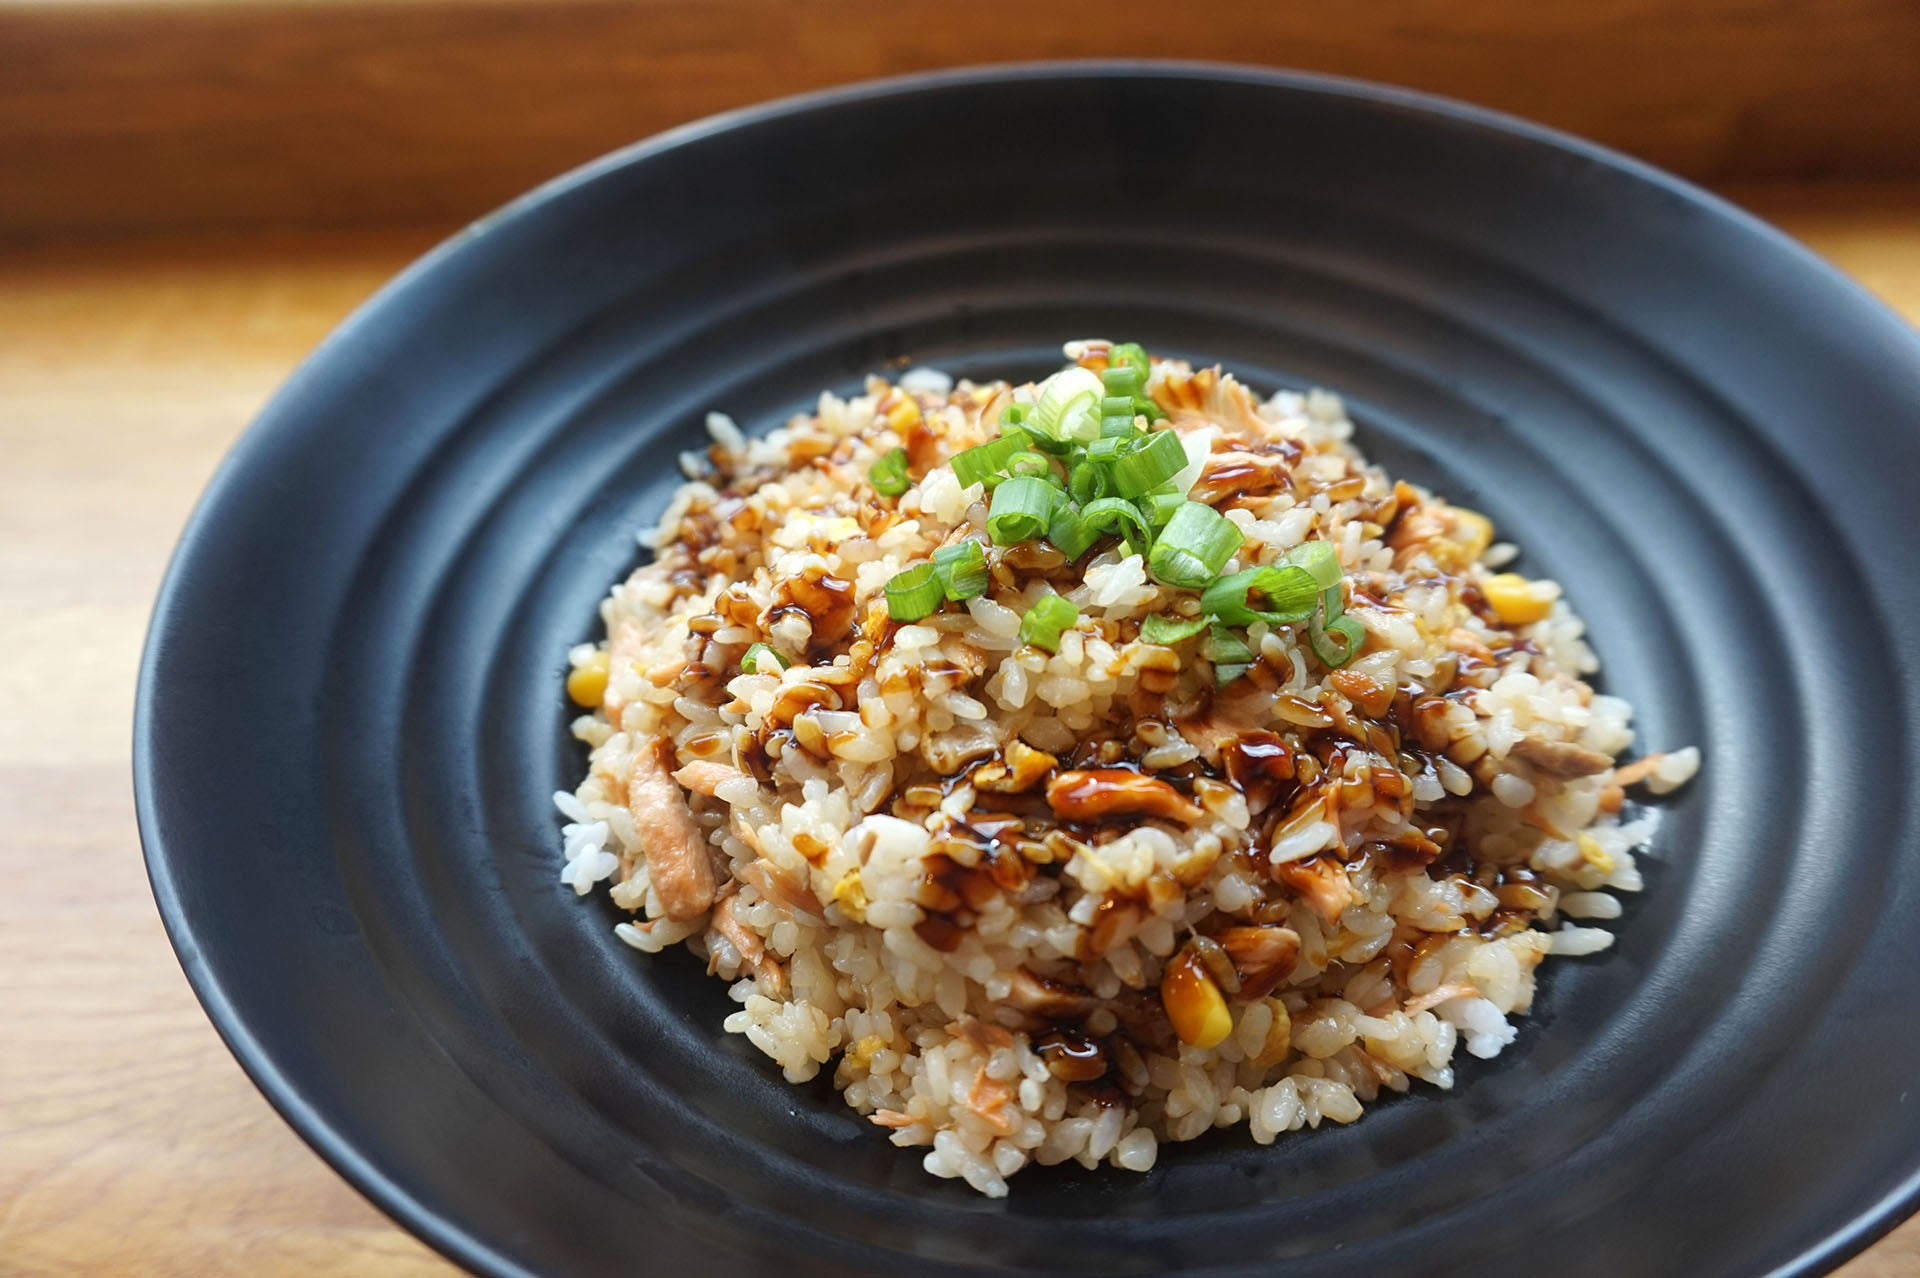 How to Make a Healthy, Easy & Delicious Rice Bowl